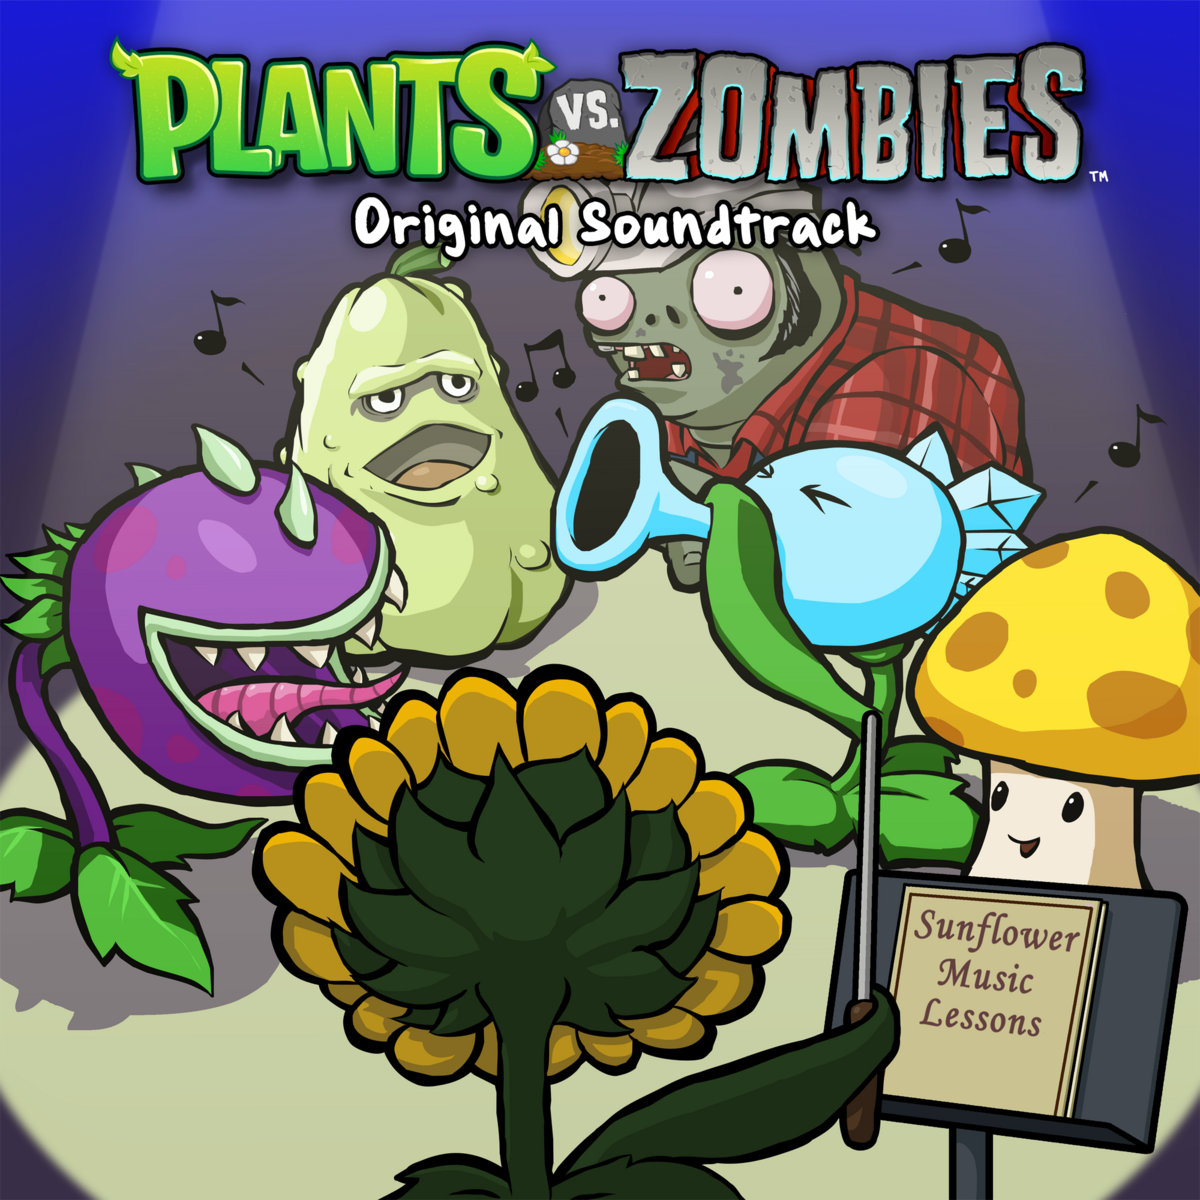 Plants vs zombies soundtrack laura shigihara plants vs zombies soundtrack toneelgroepblik Image collections